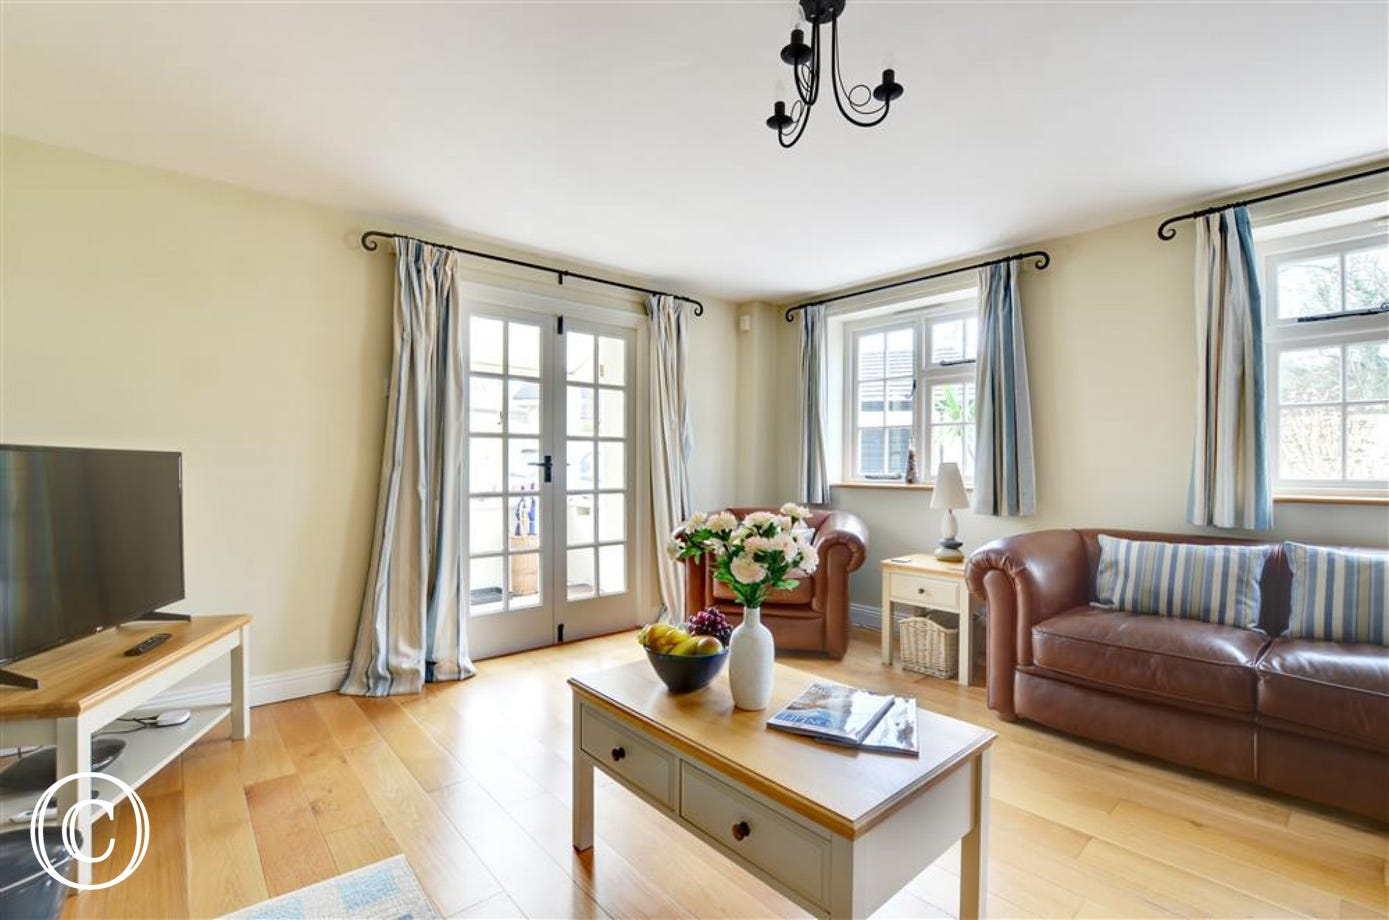 Stylishly presented sitting room with leather sofas and a large TV